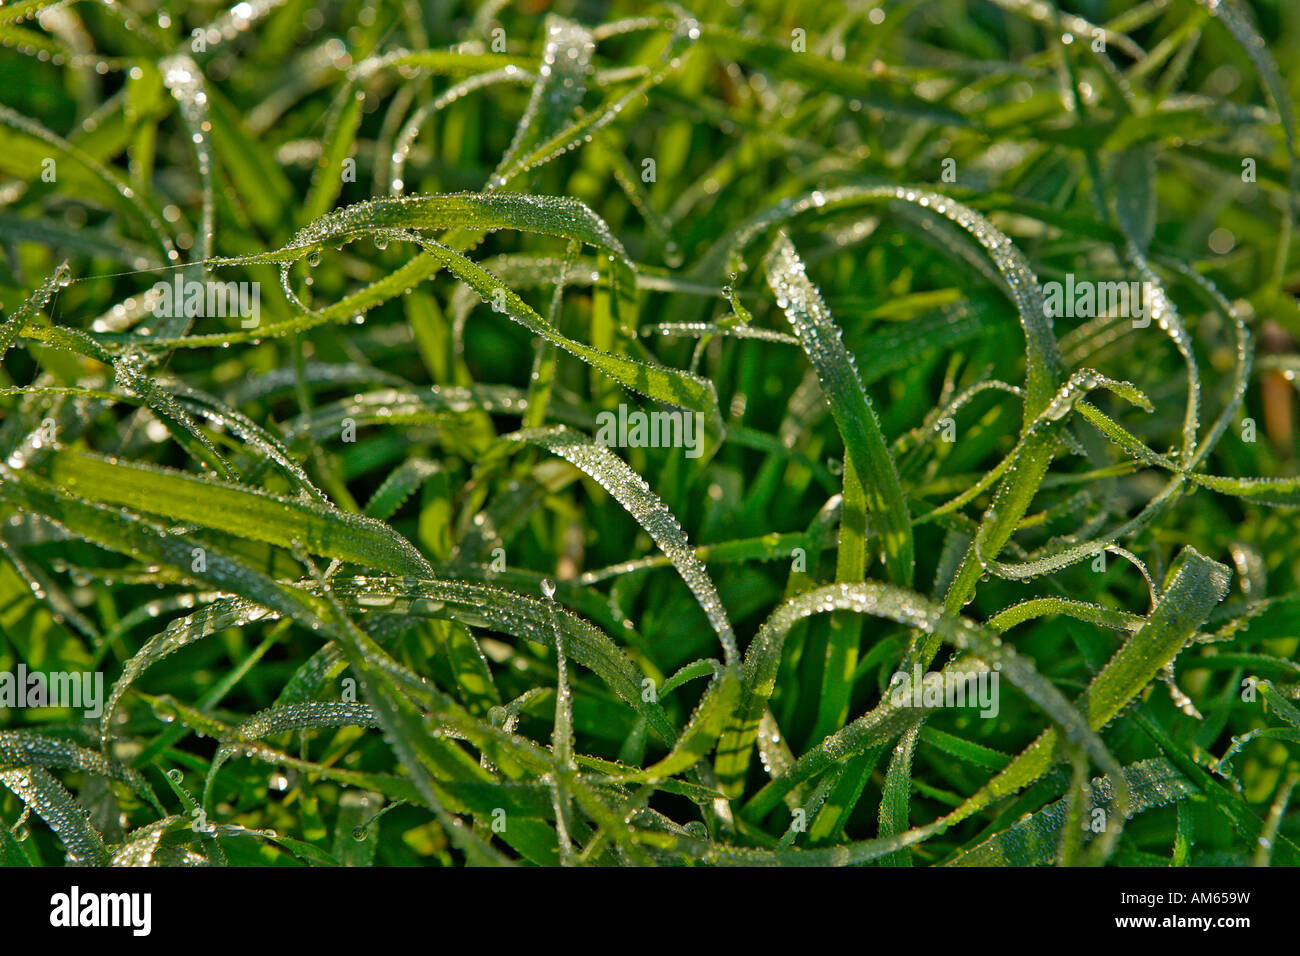 Blades of grass with dew drops - Stock Image